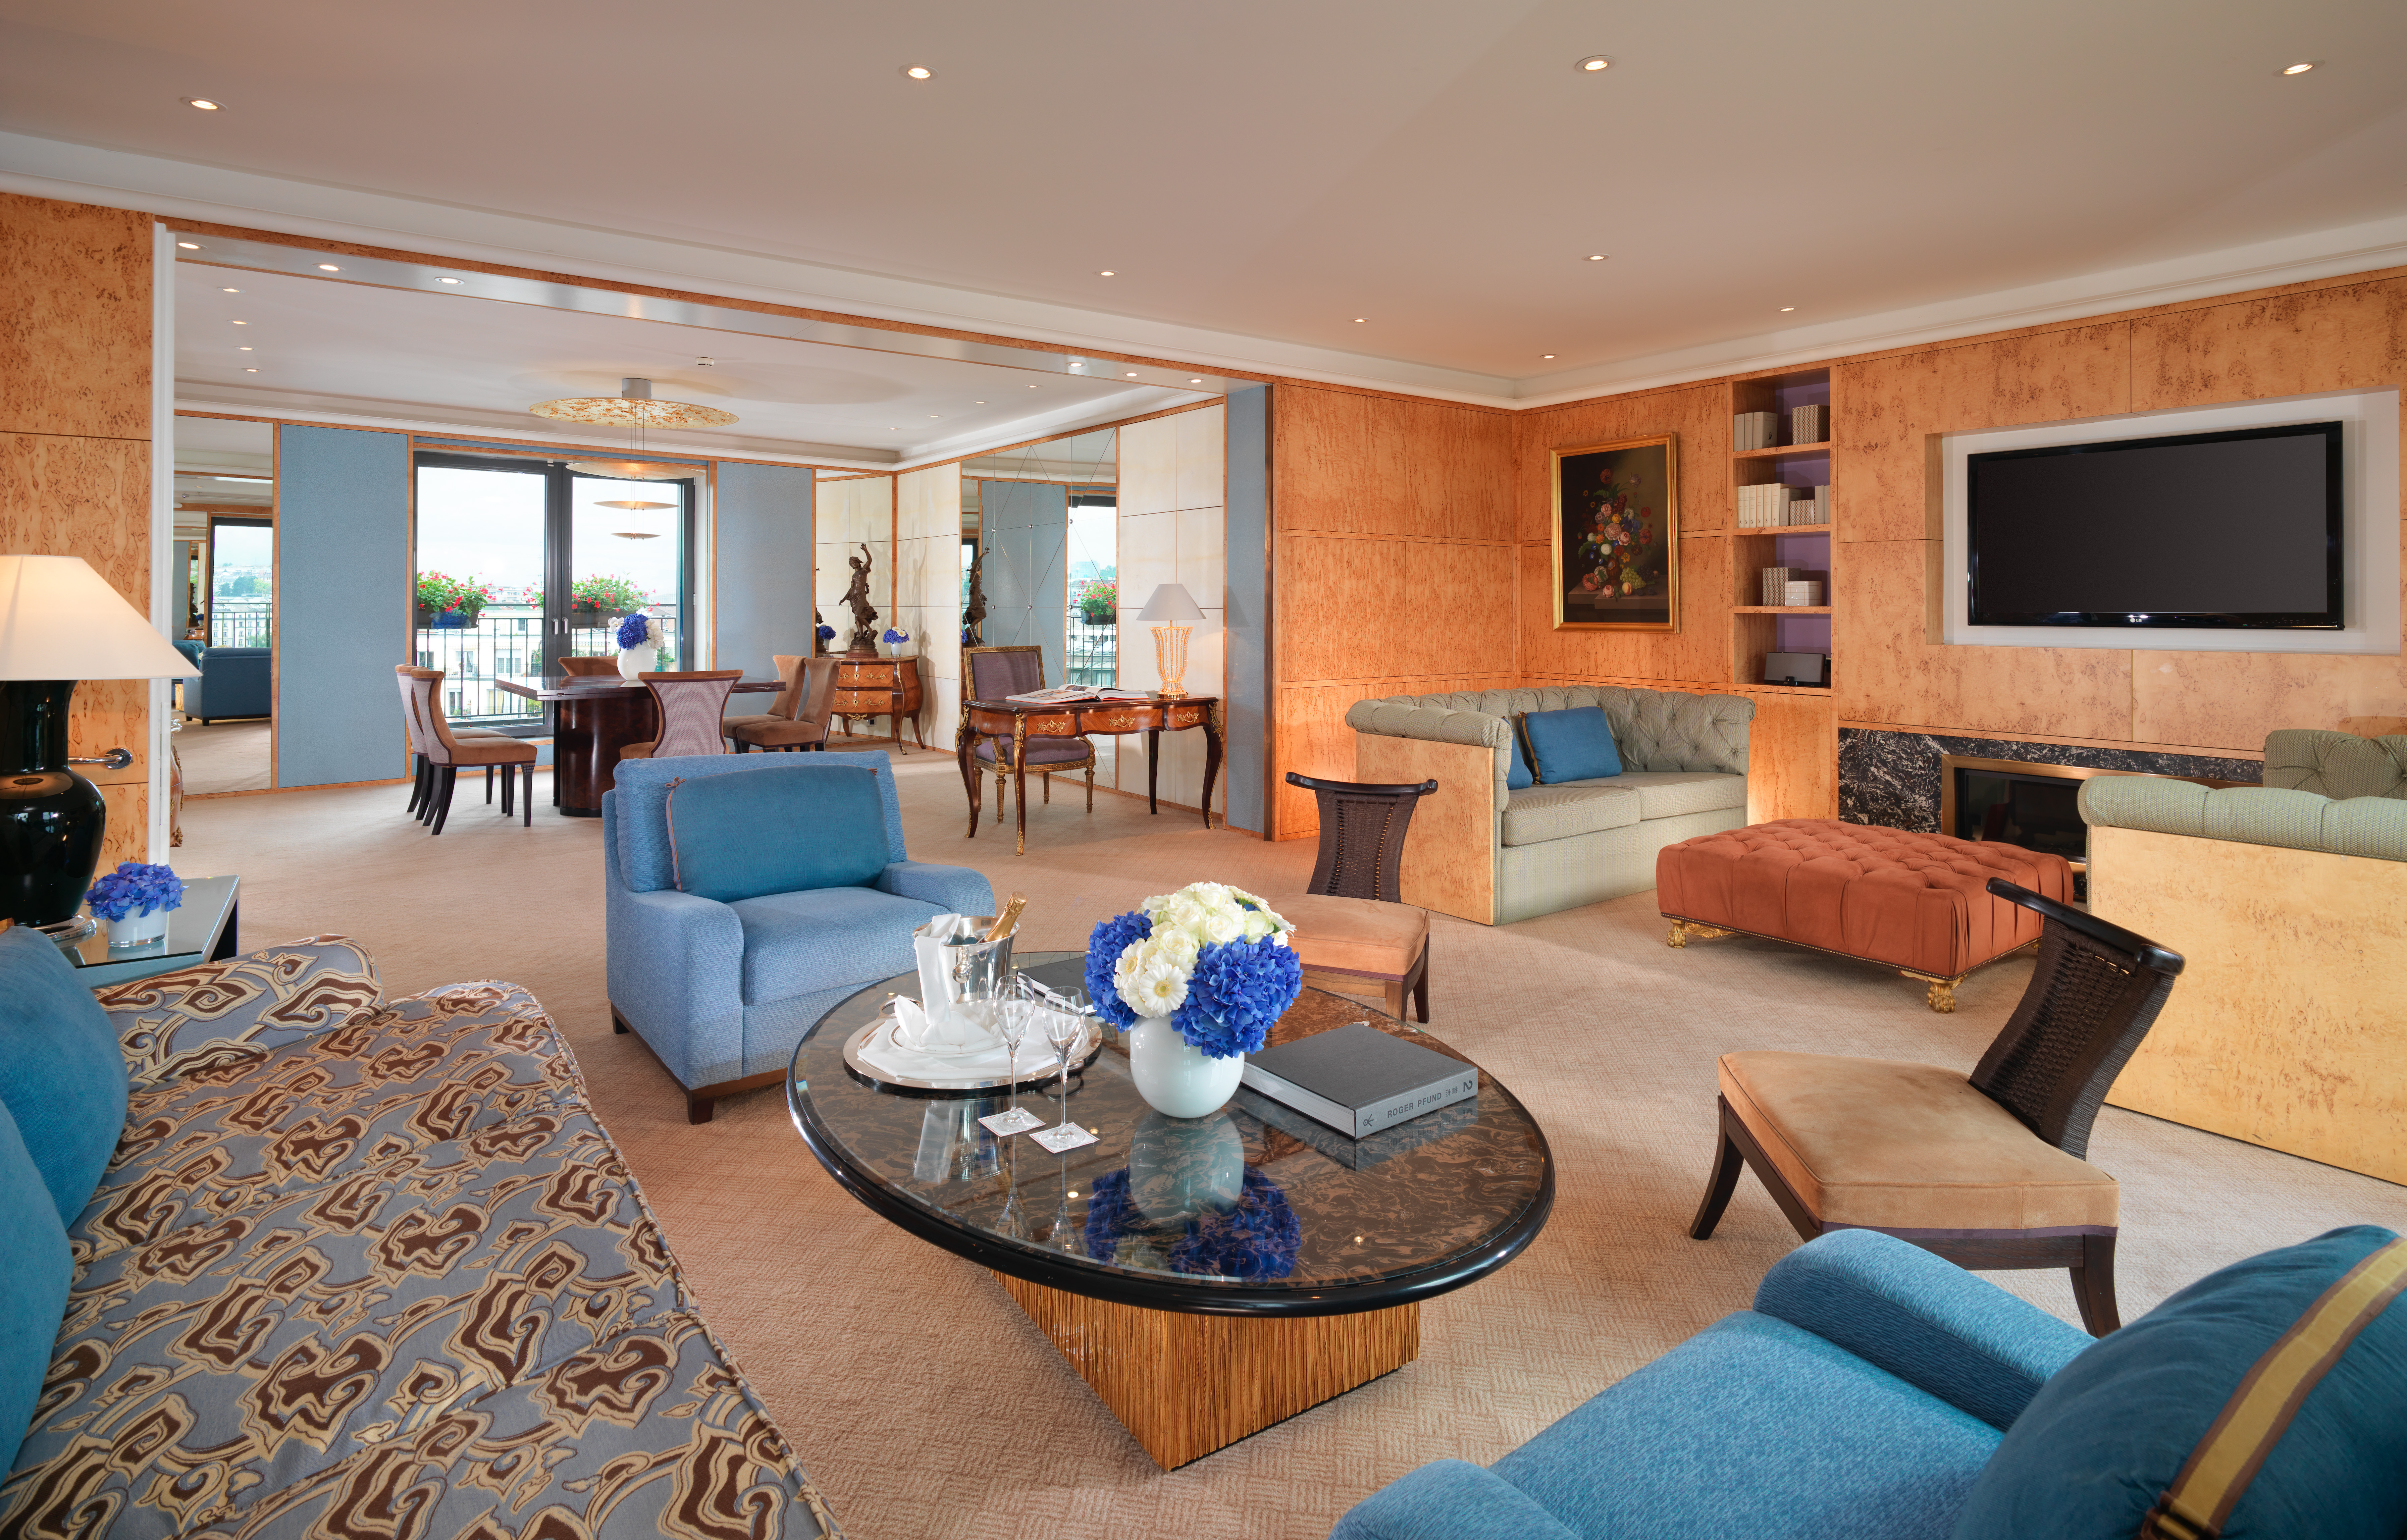 The Royal Armleder Suite at Le Richemond. Image courtesy Le Richemond